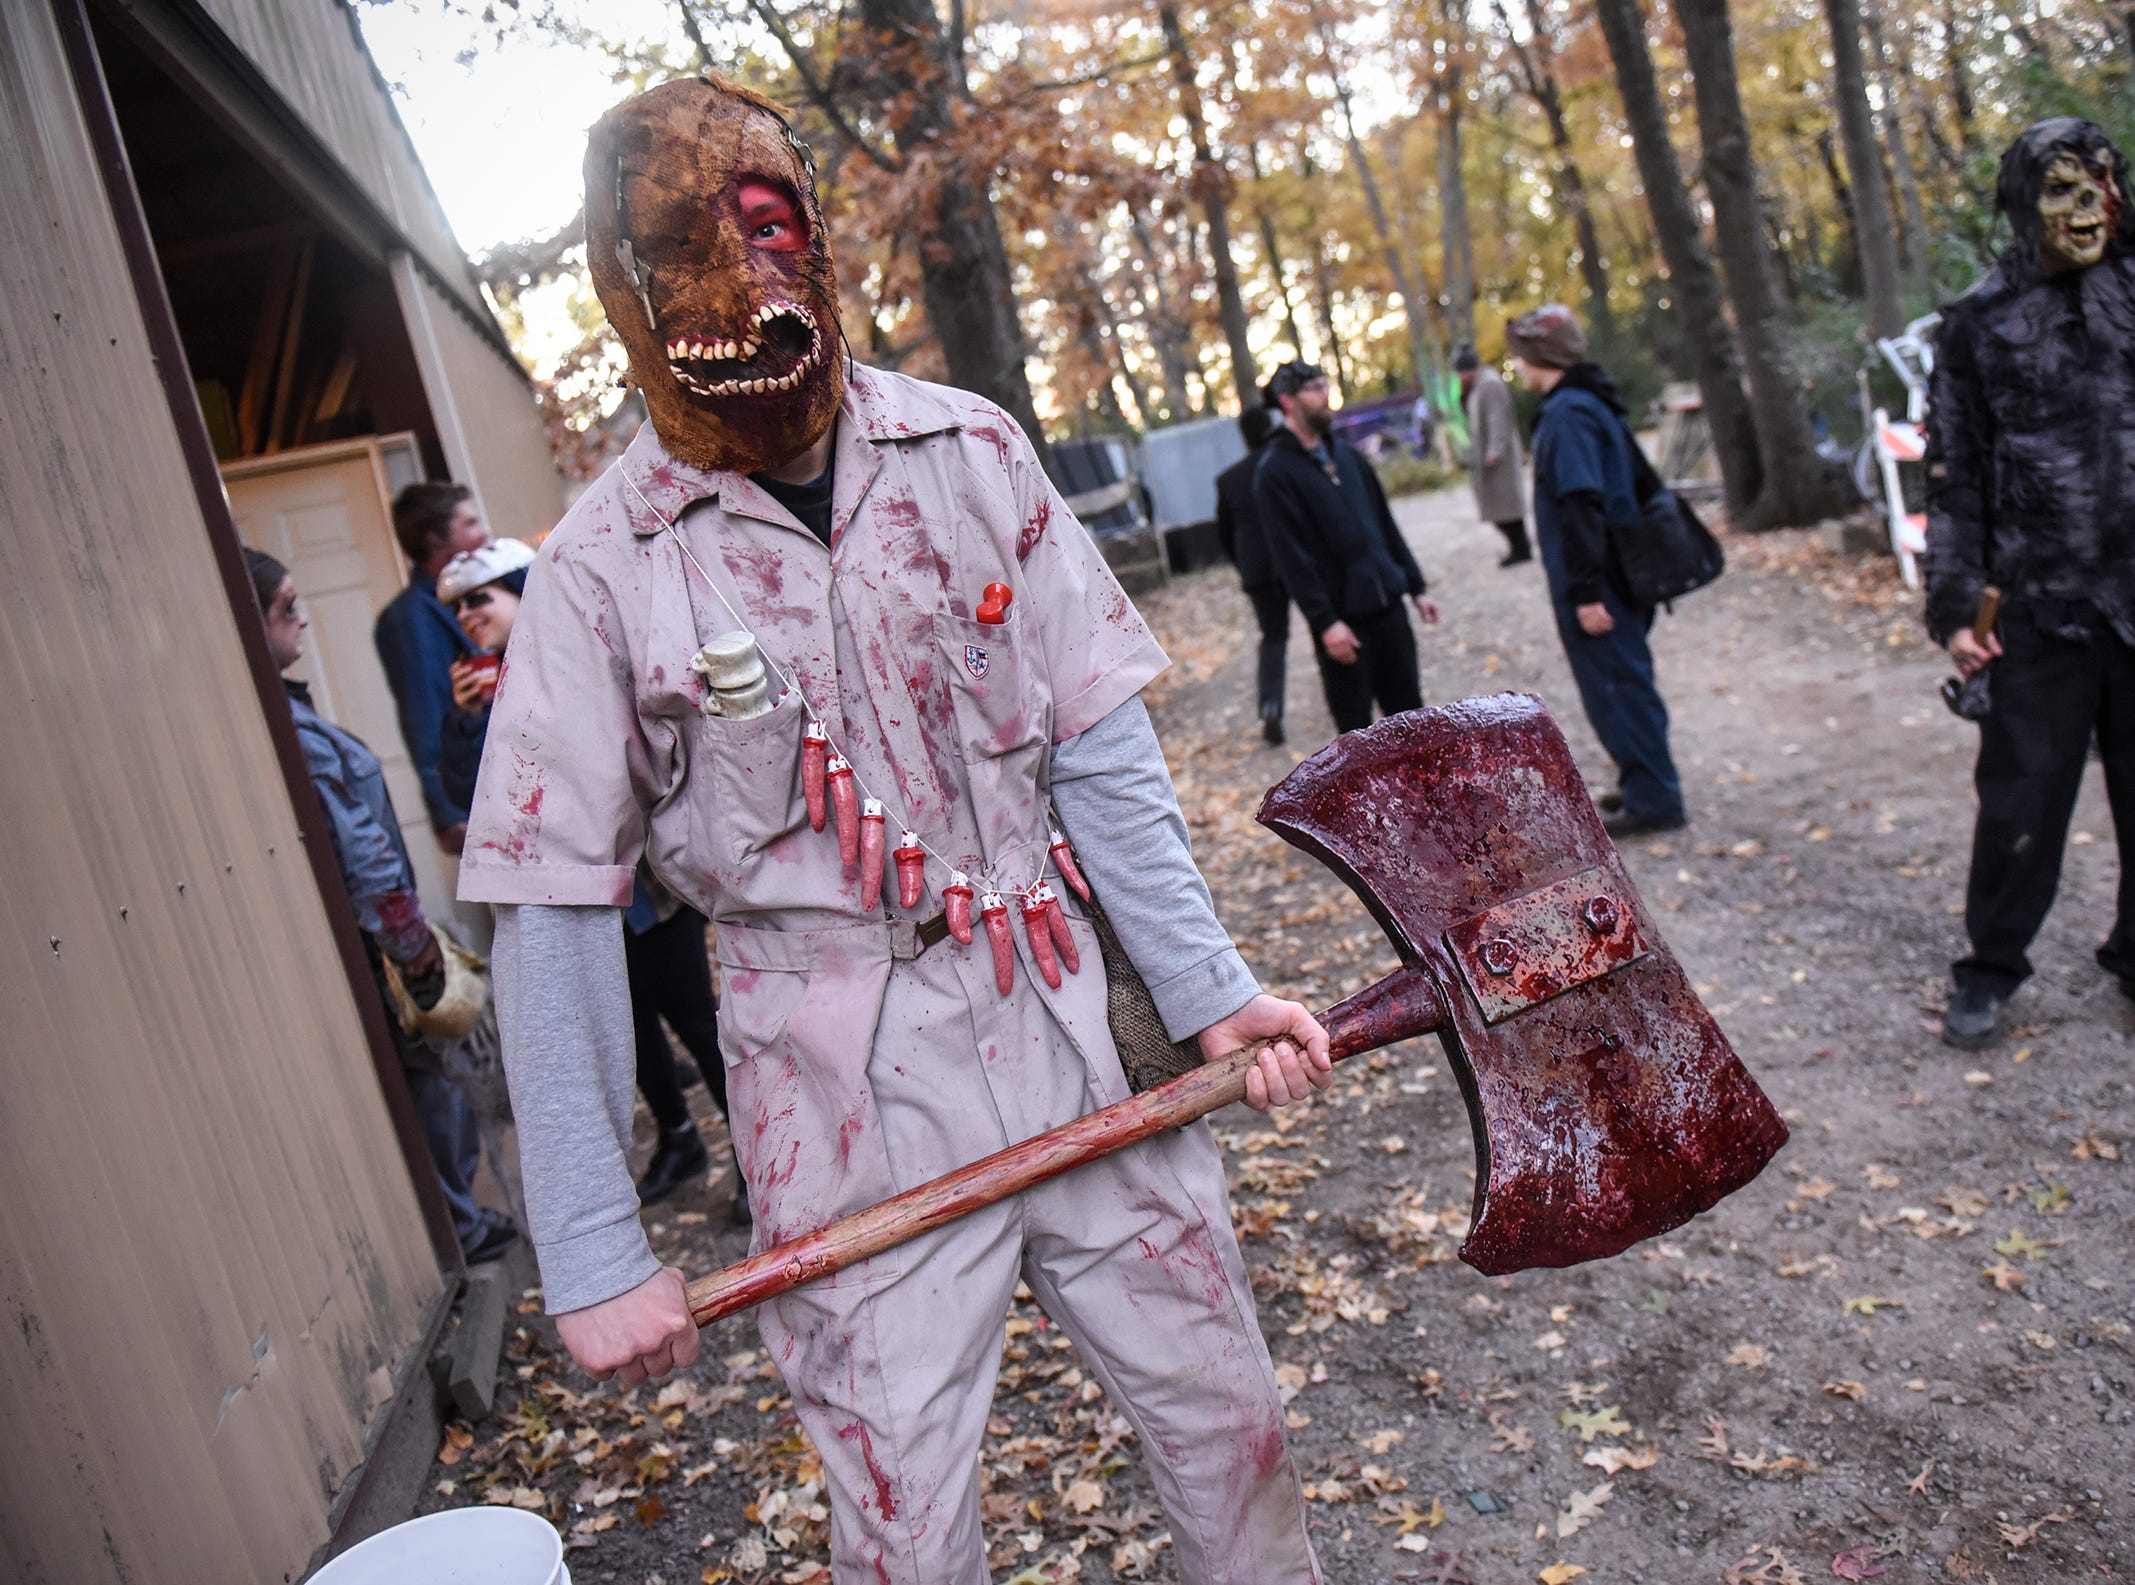 Actors prepare for their haunting performances Thursday, Oct. 18, at Molitor's Haunted Acres in Sauk Rapids.